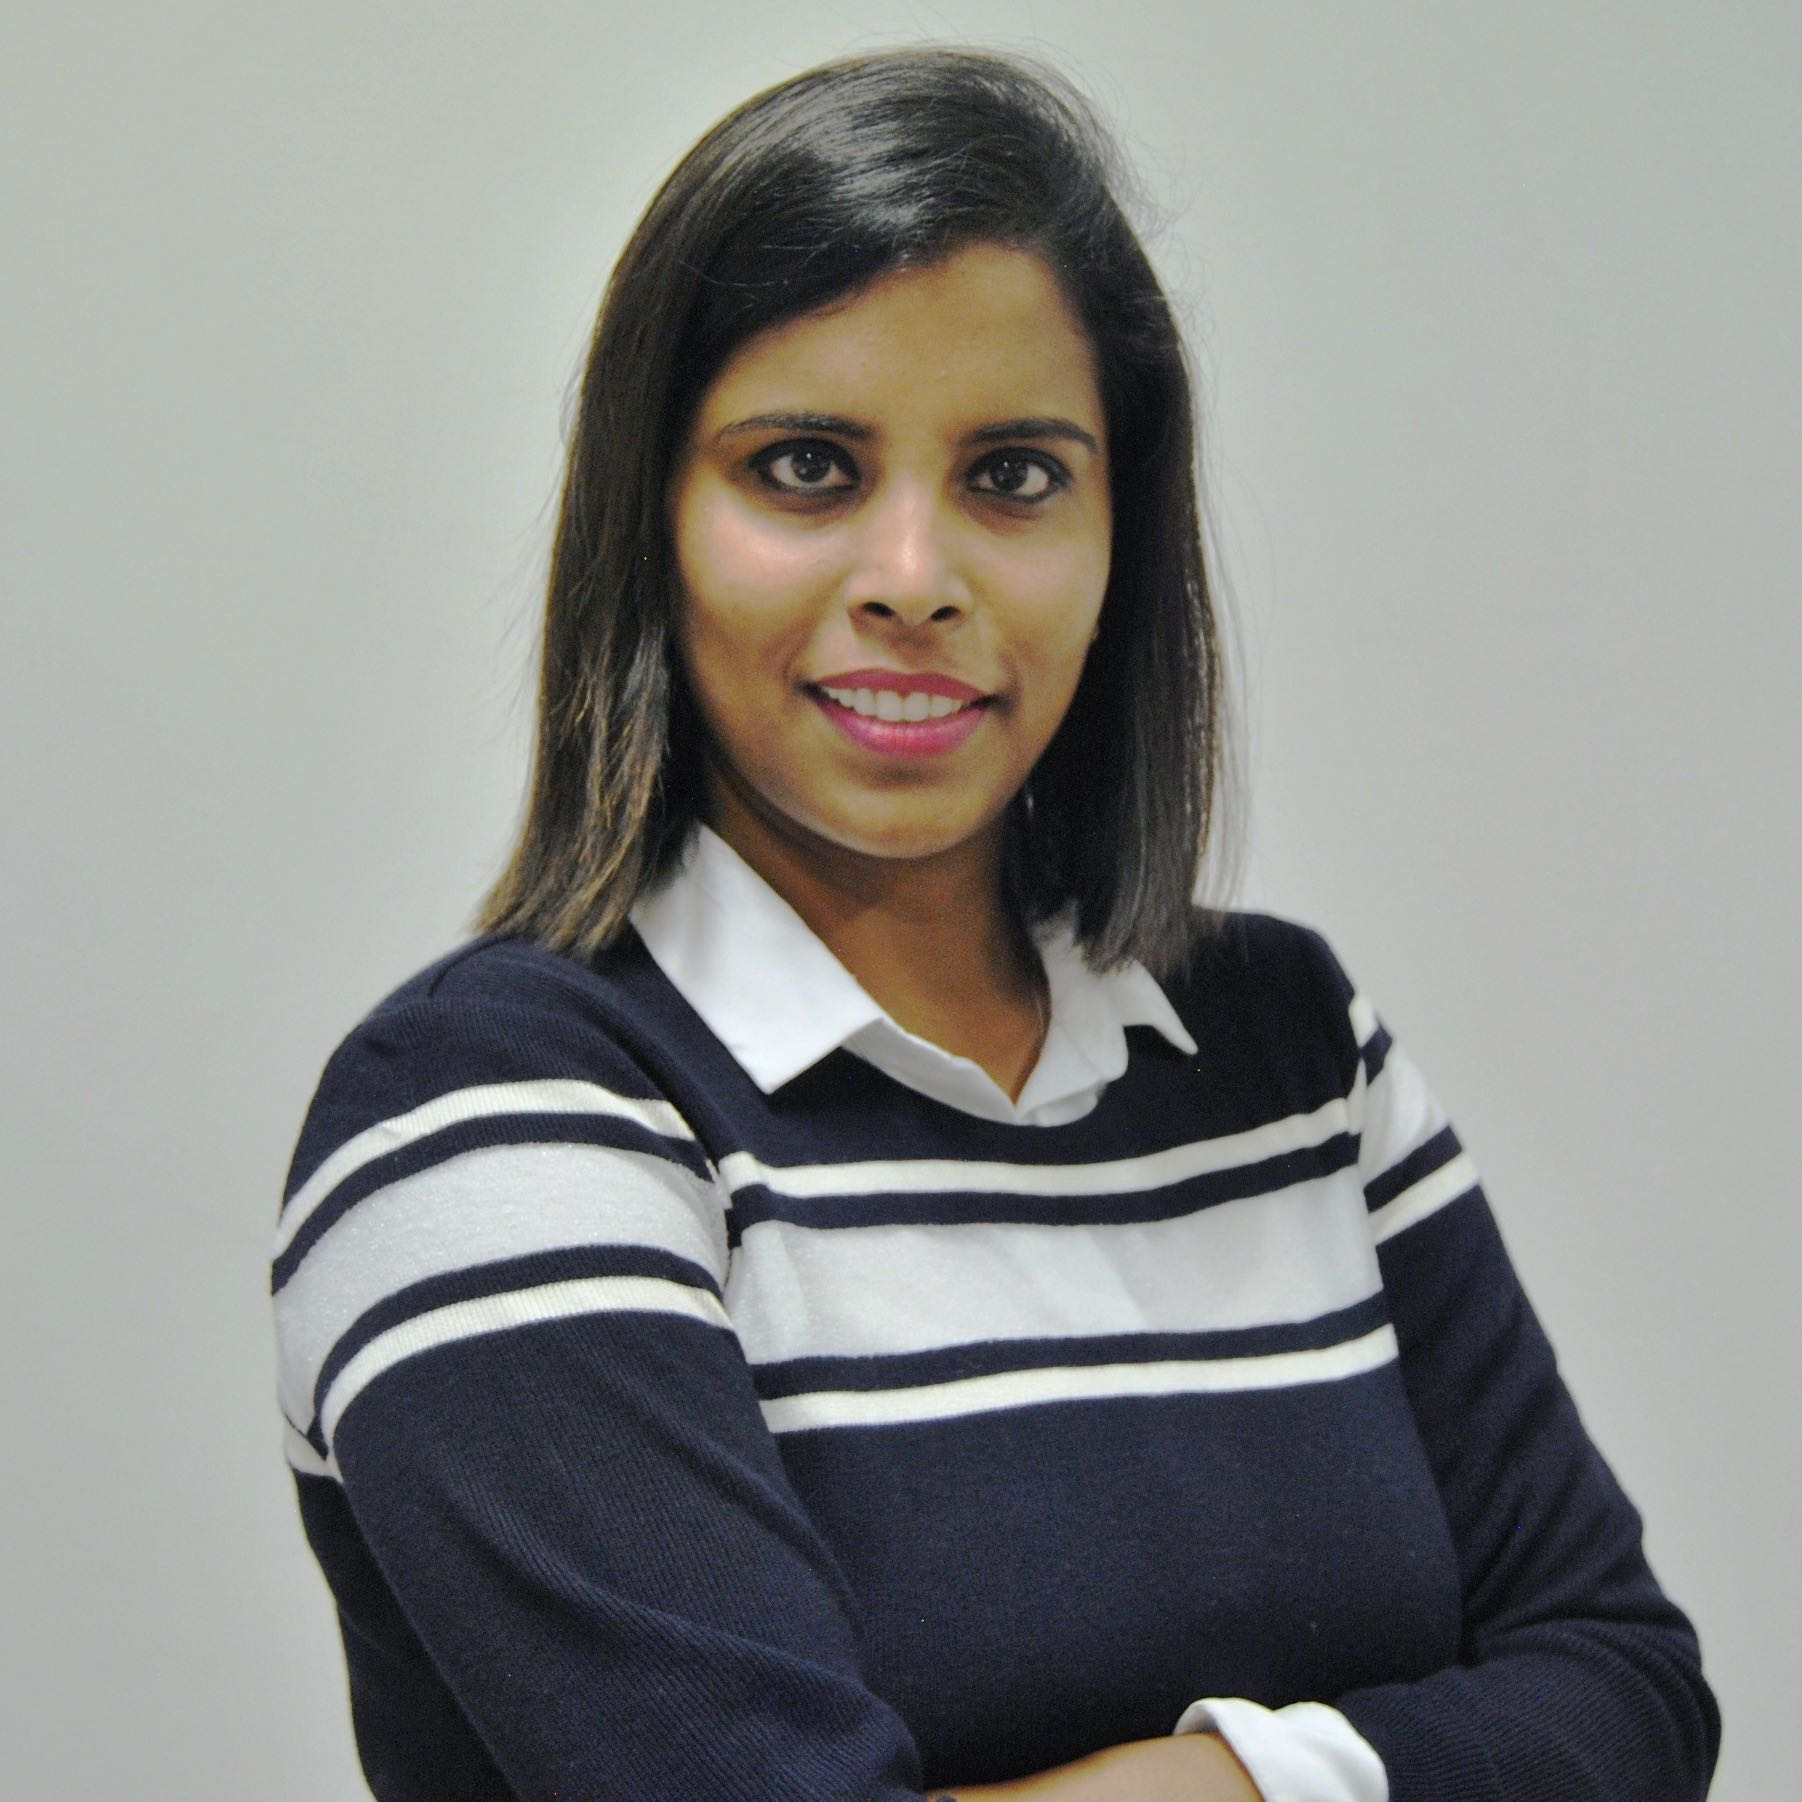 Anamika Thanda, contributor to the CareerFoundry blog